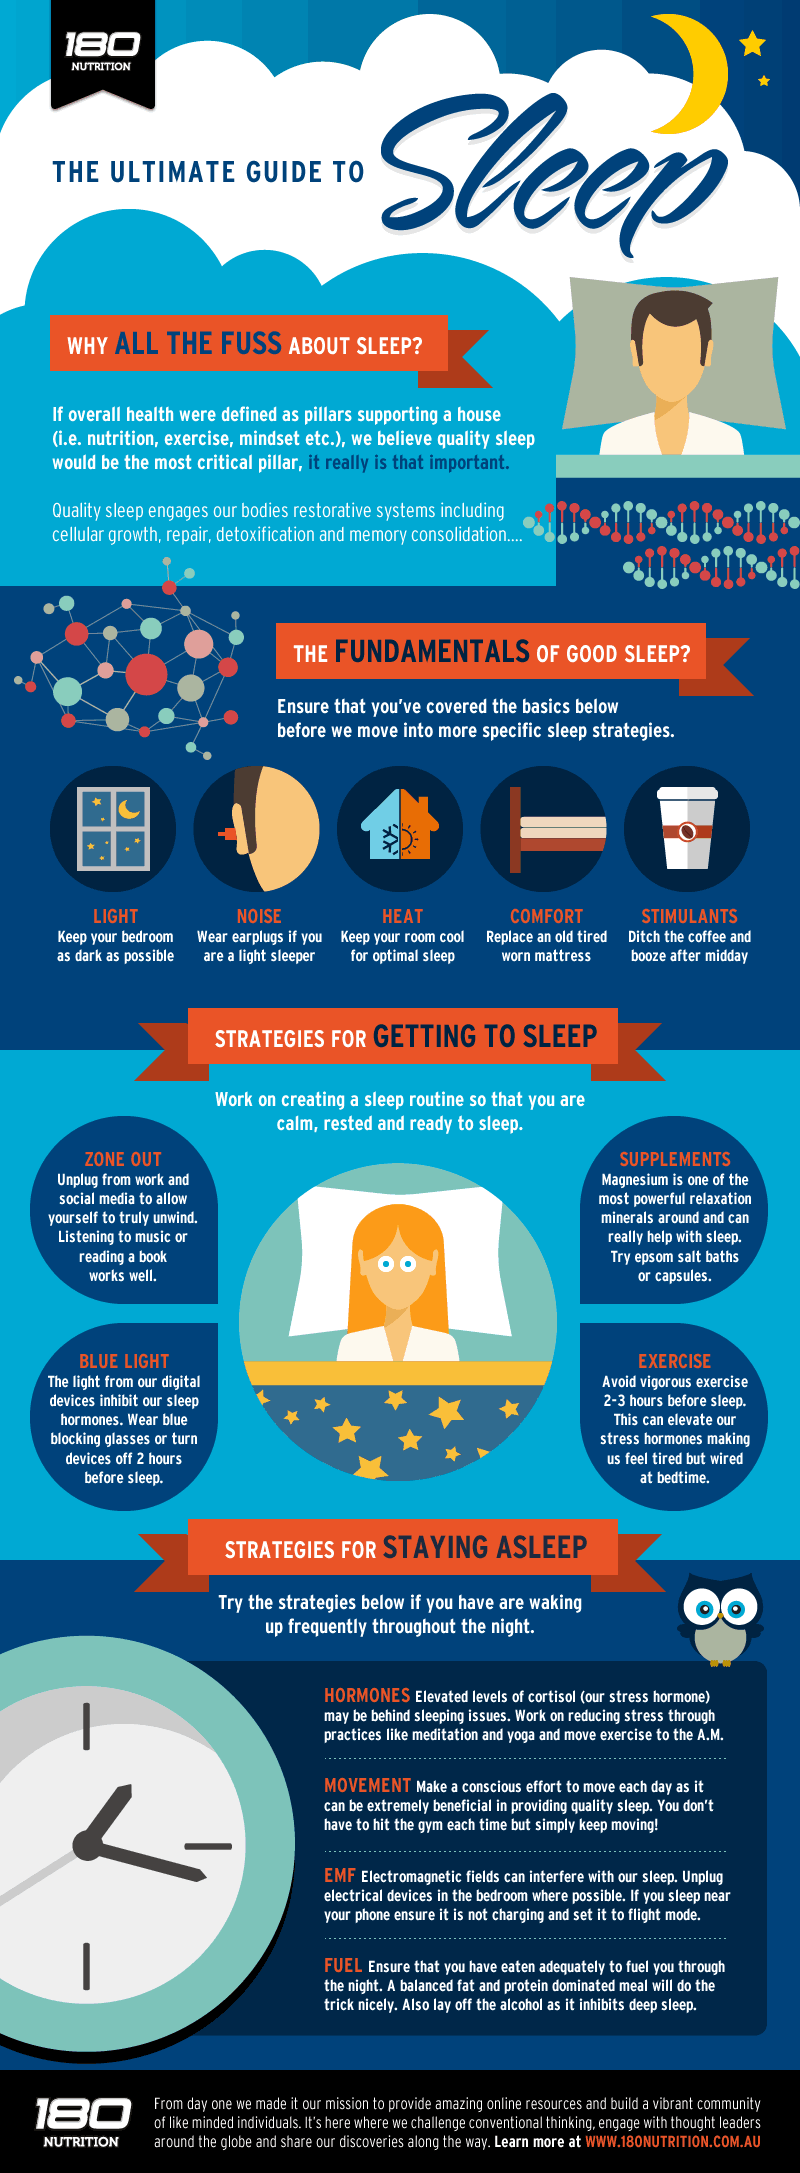 180_Nutrition_Sleep_Infographic